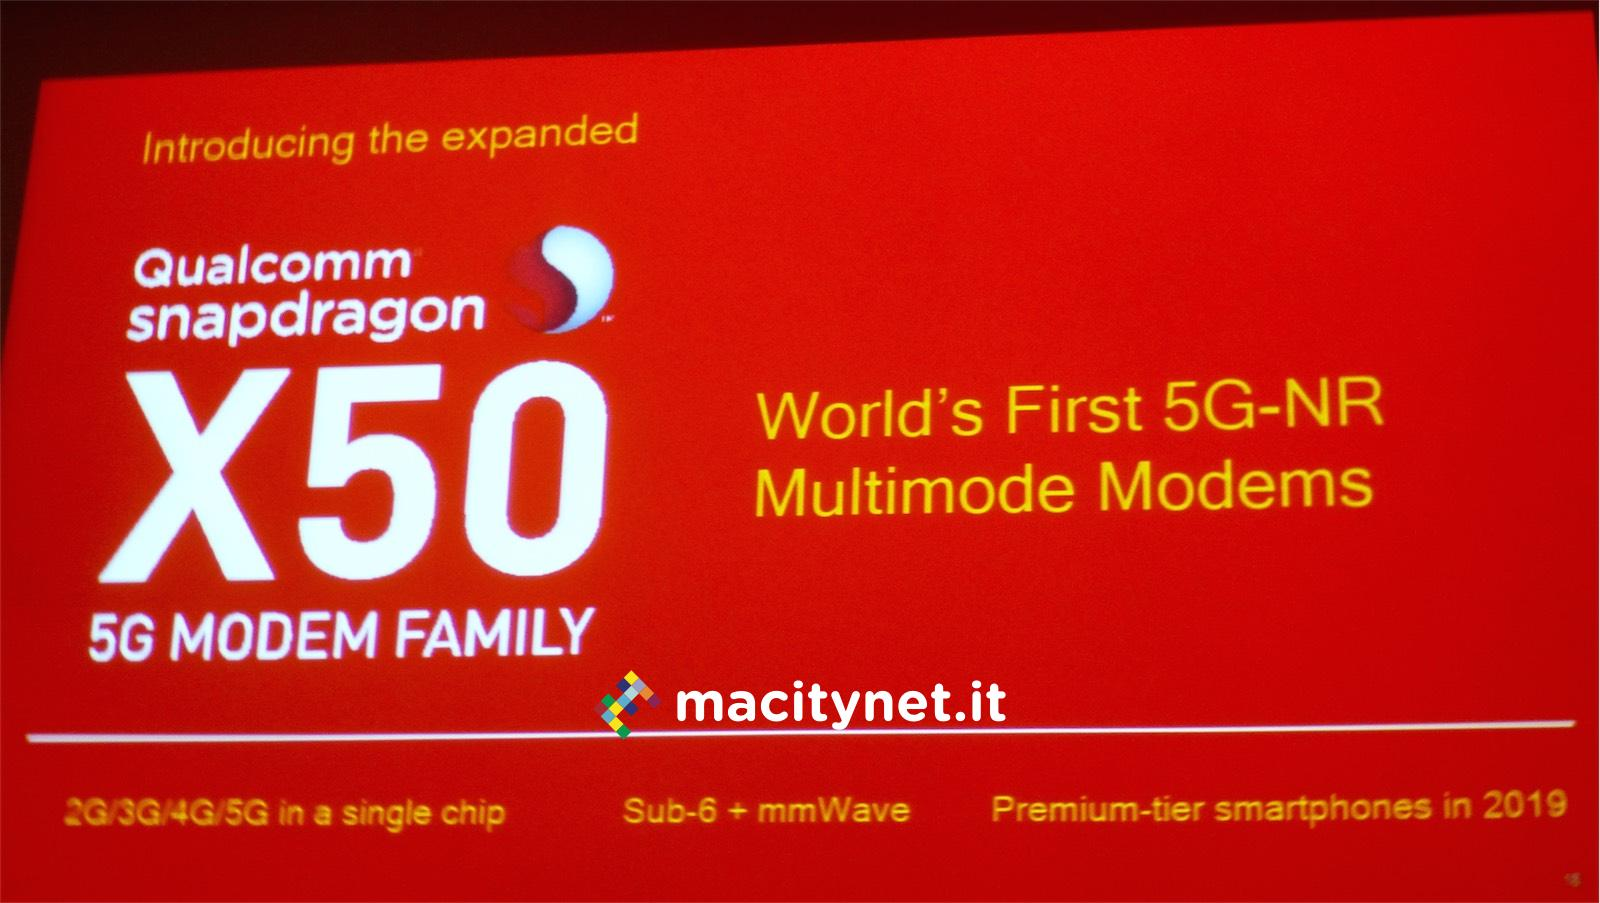 iphone 5G, foto presentazione qualcomm X50 5G 5